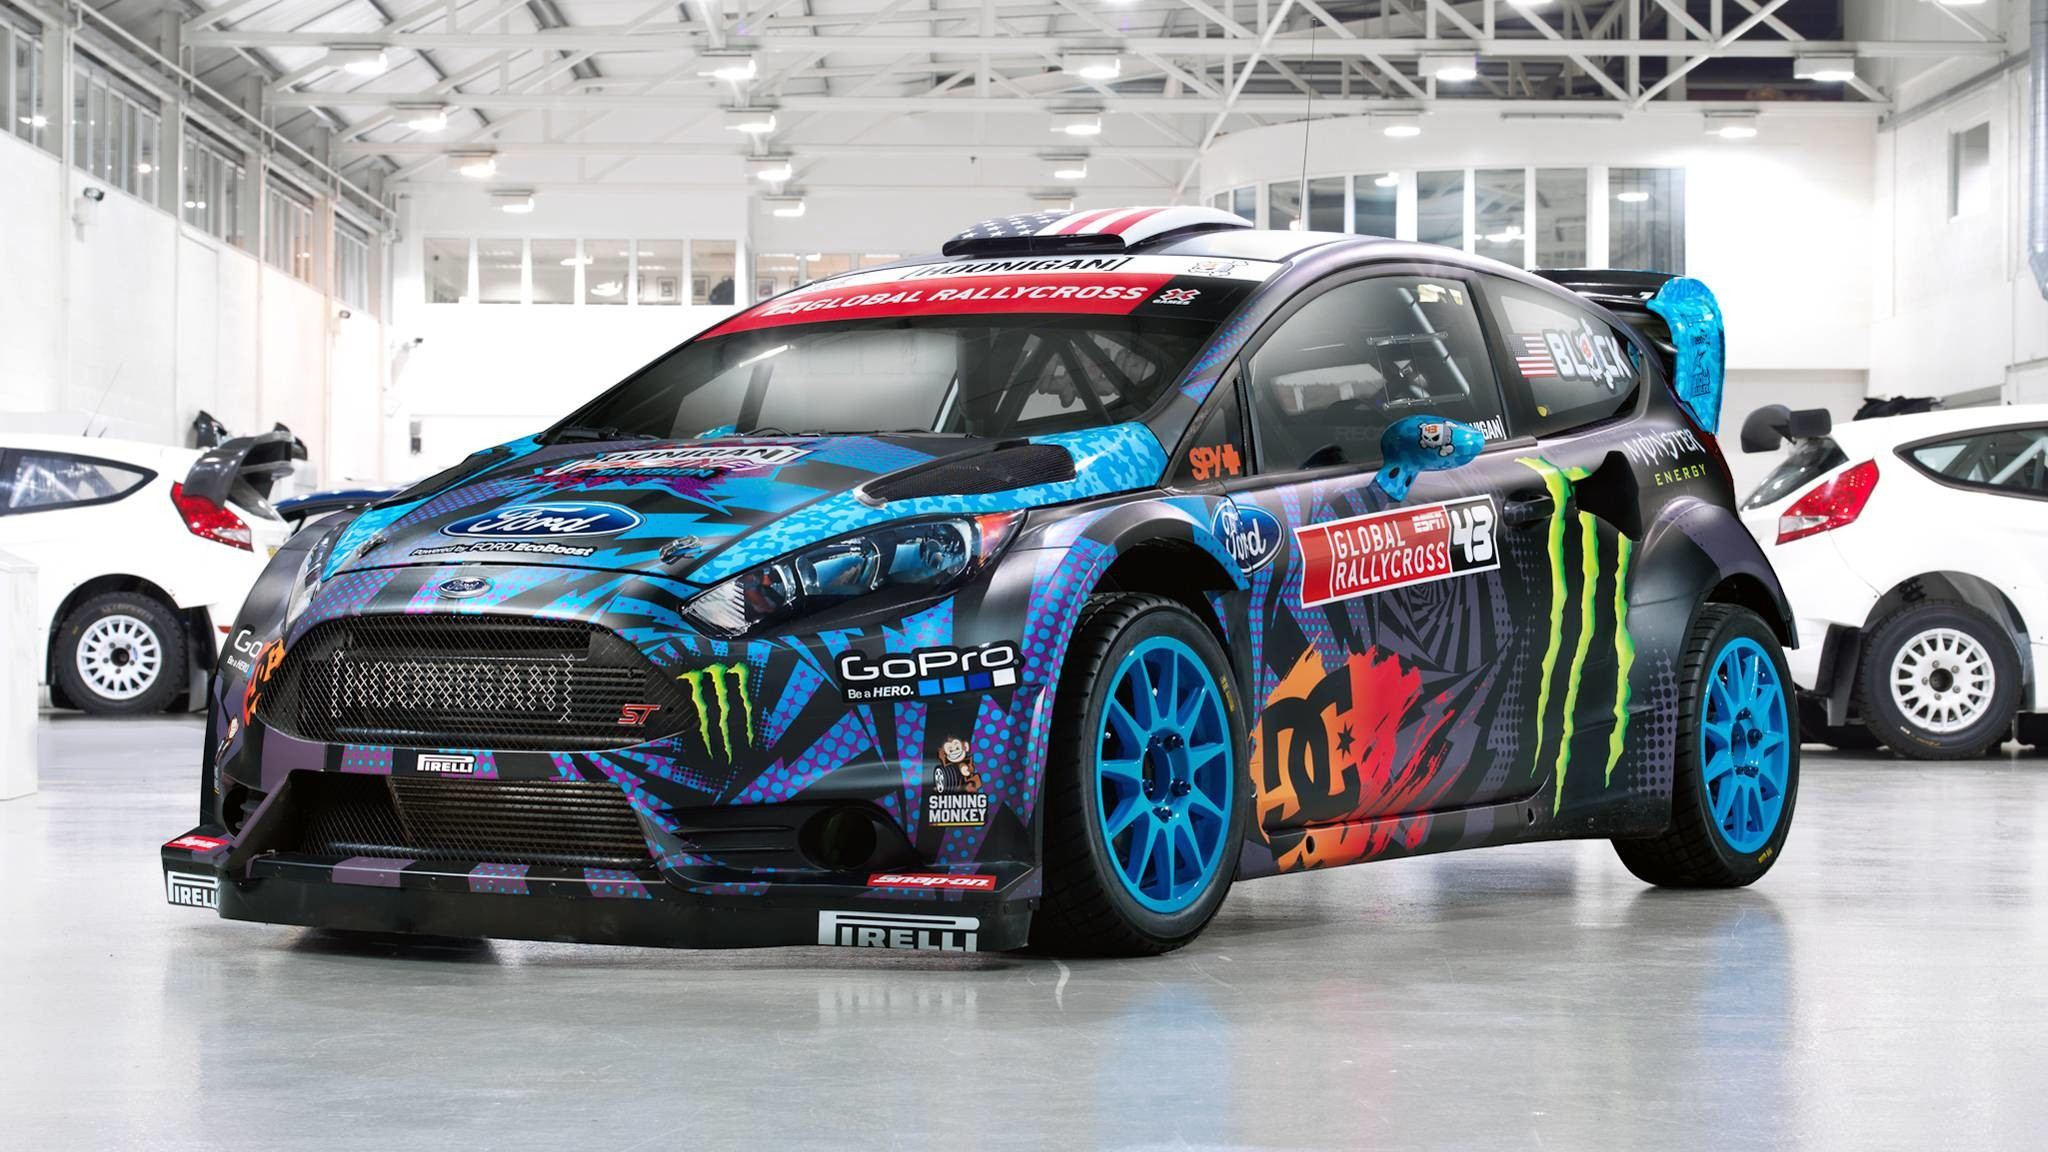 Ken Block 2018 Wallpaper Wallpapertag